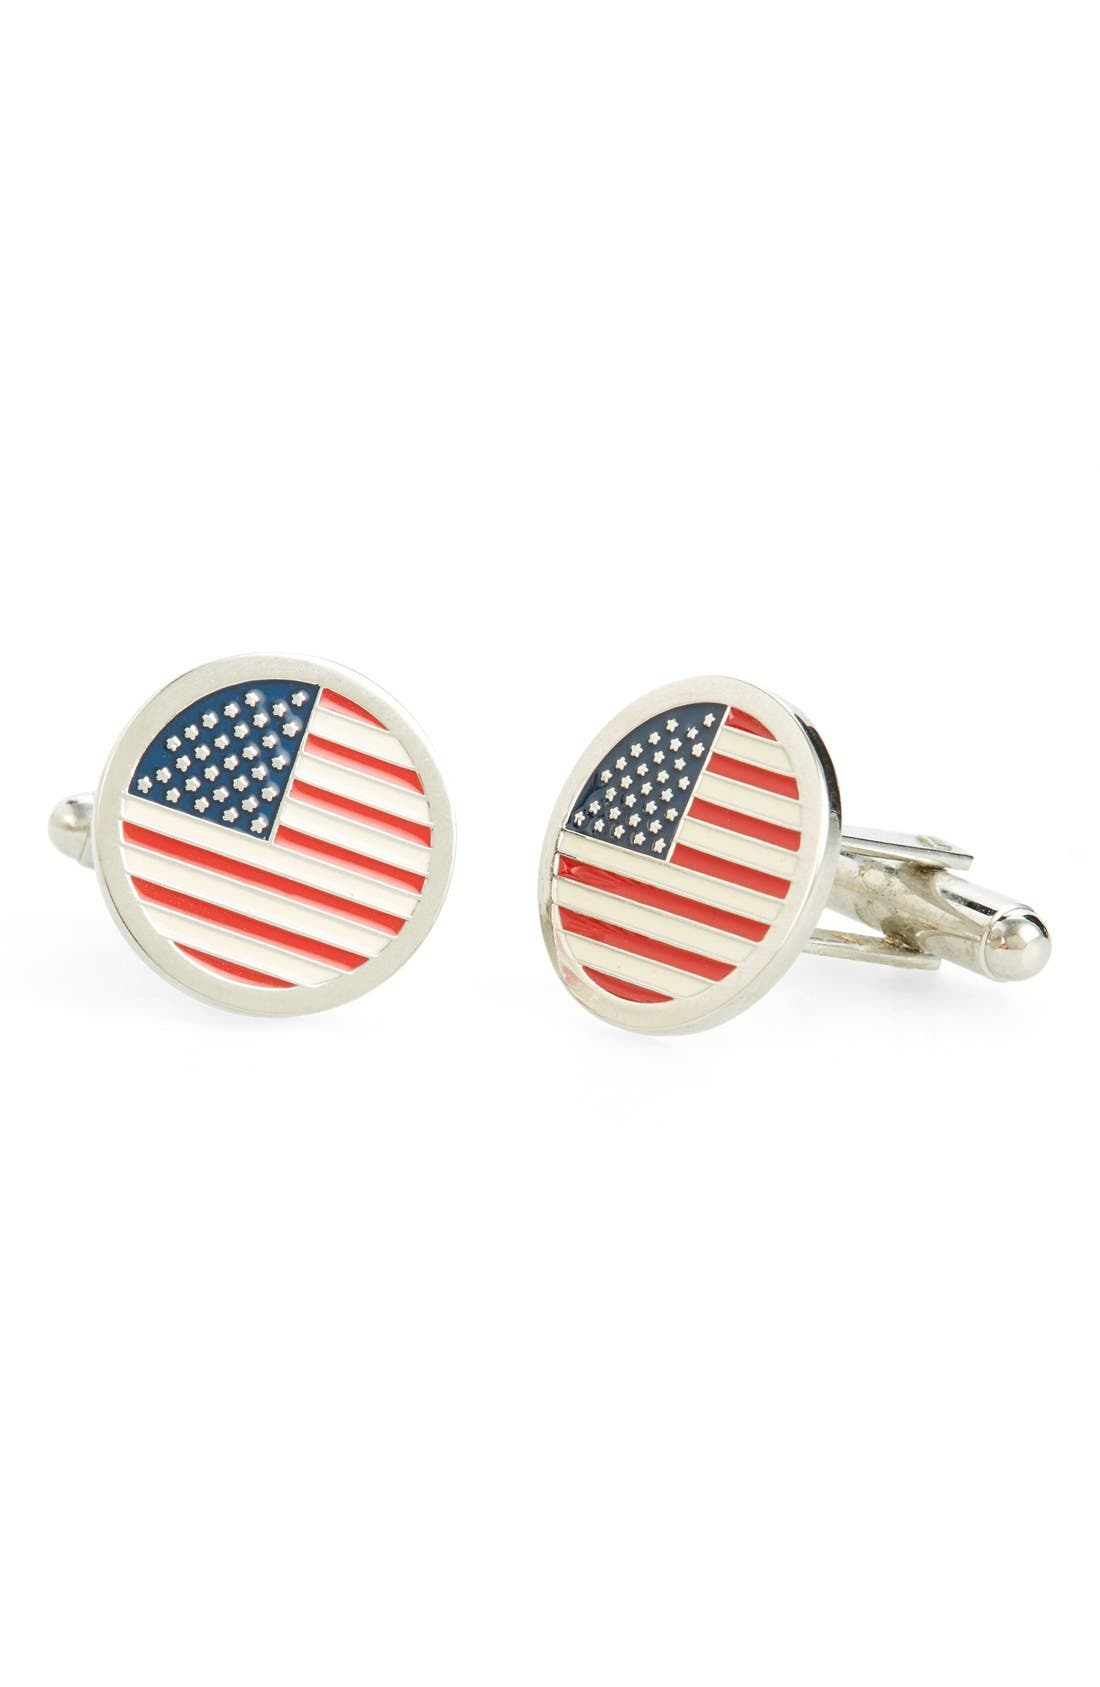 Main Image - LINK UP Round American Flag Cuff Links